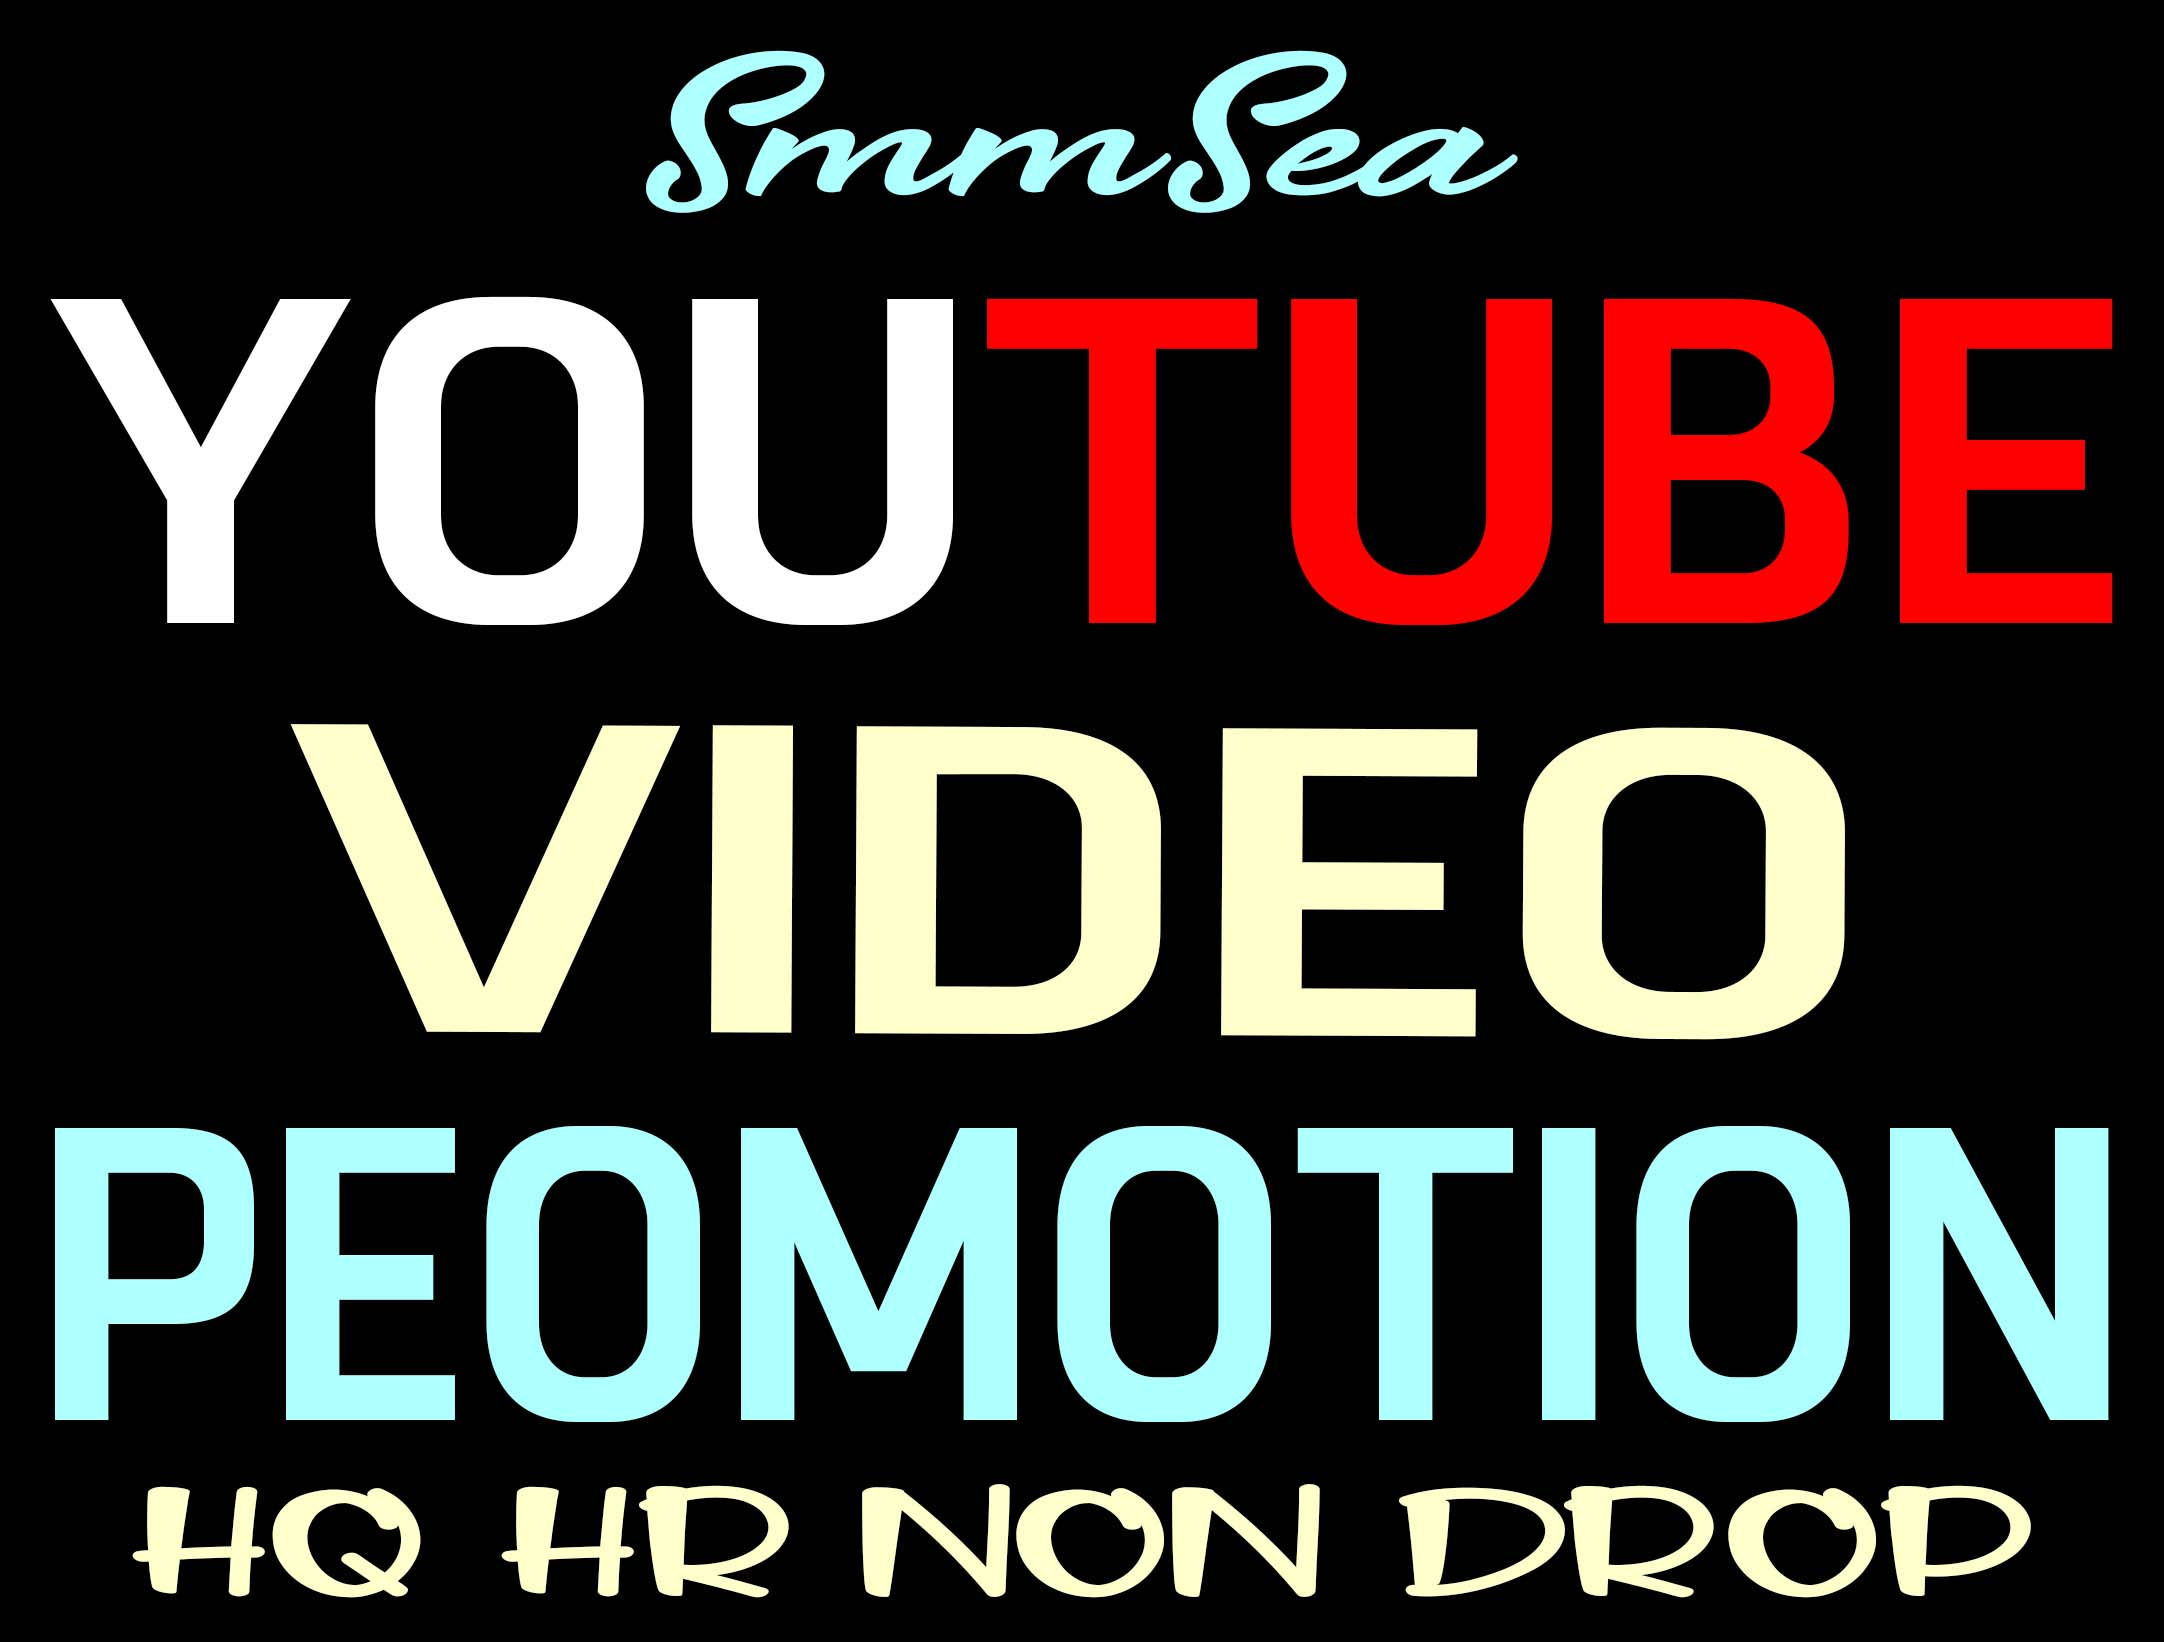 YOUTUBE VIDEO PROMOTION HQ AND NON DROP WITHIN 6 HOURS